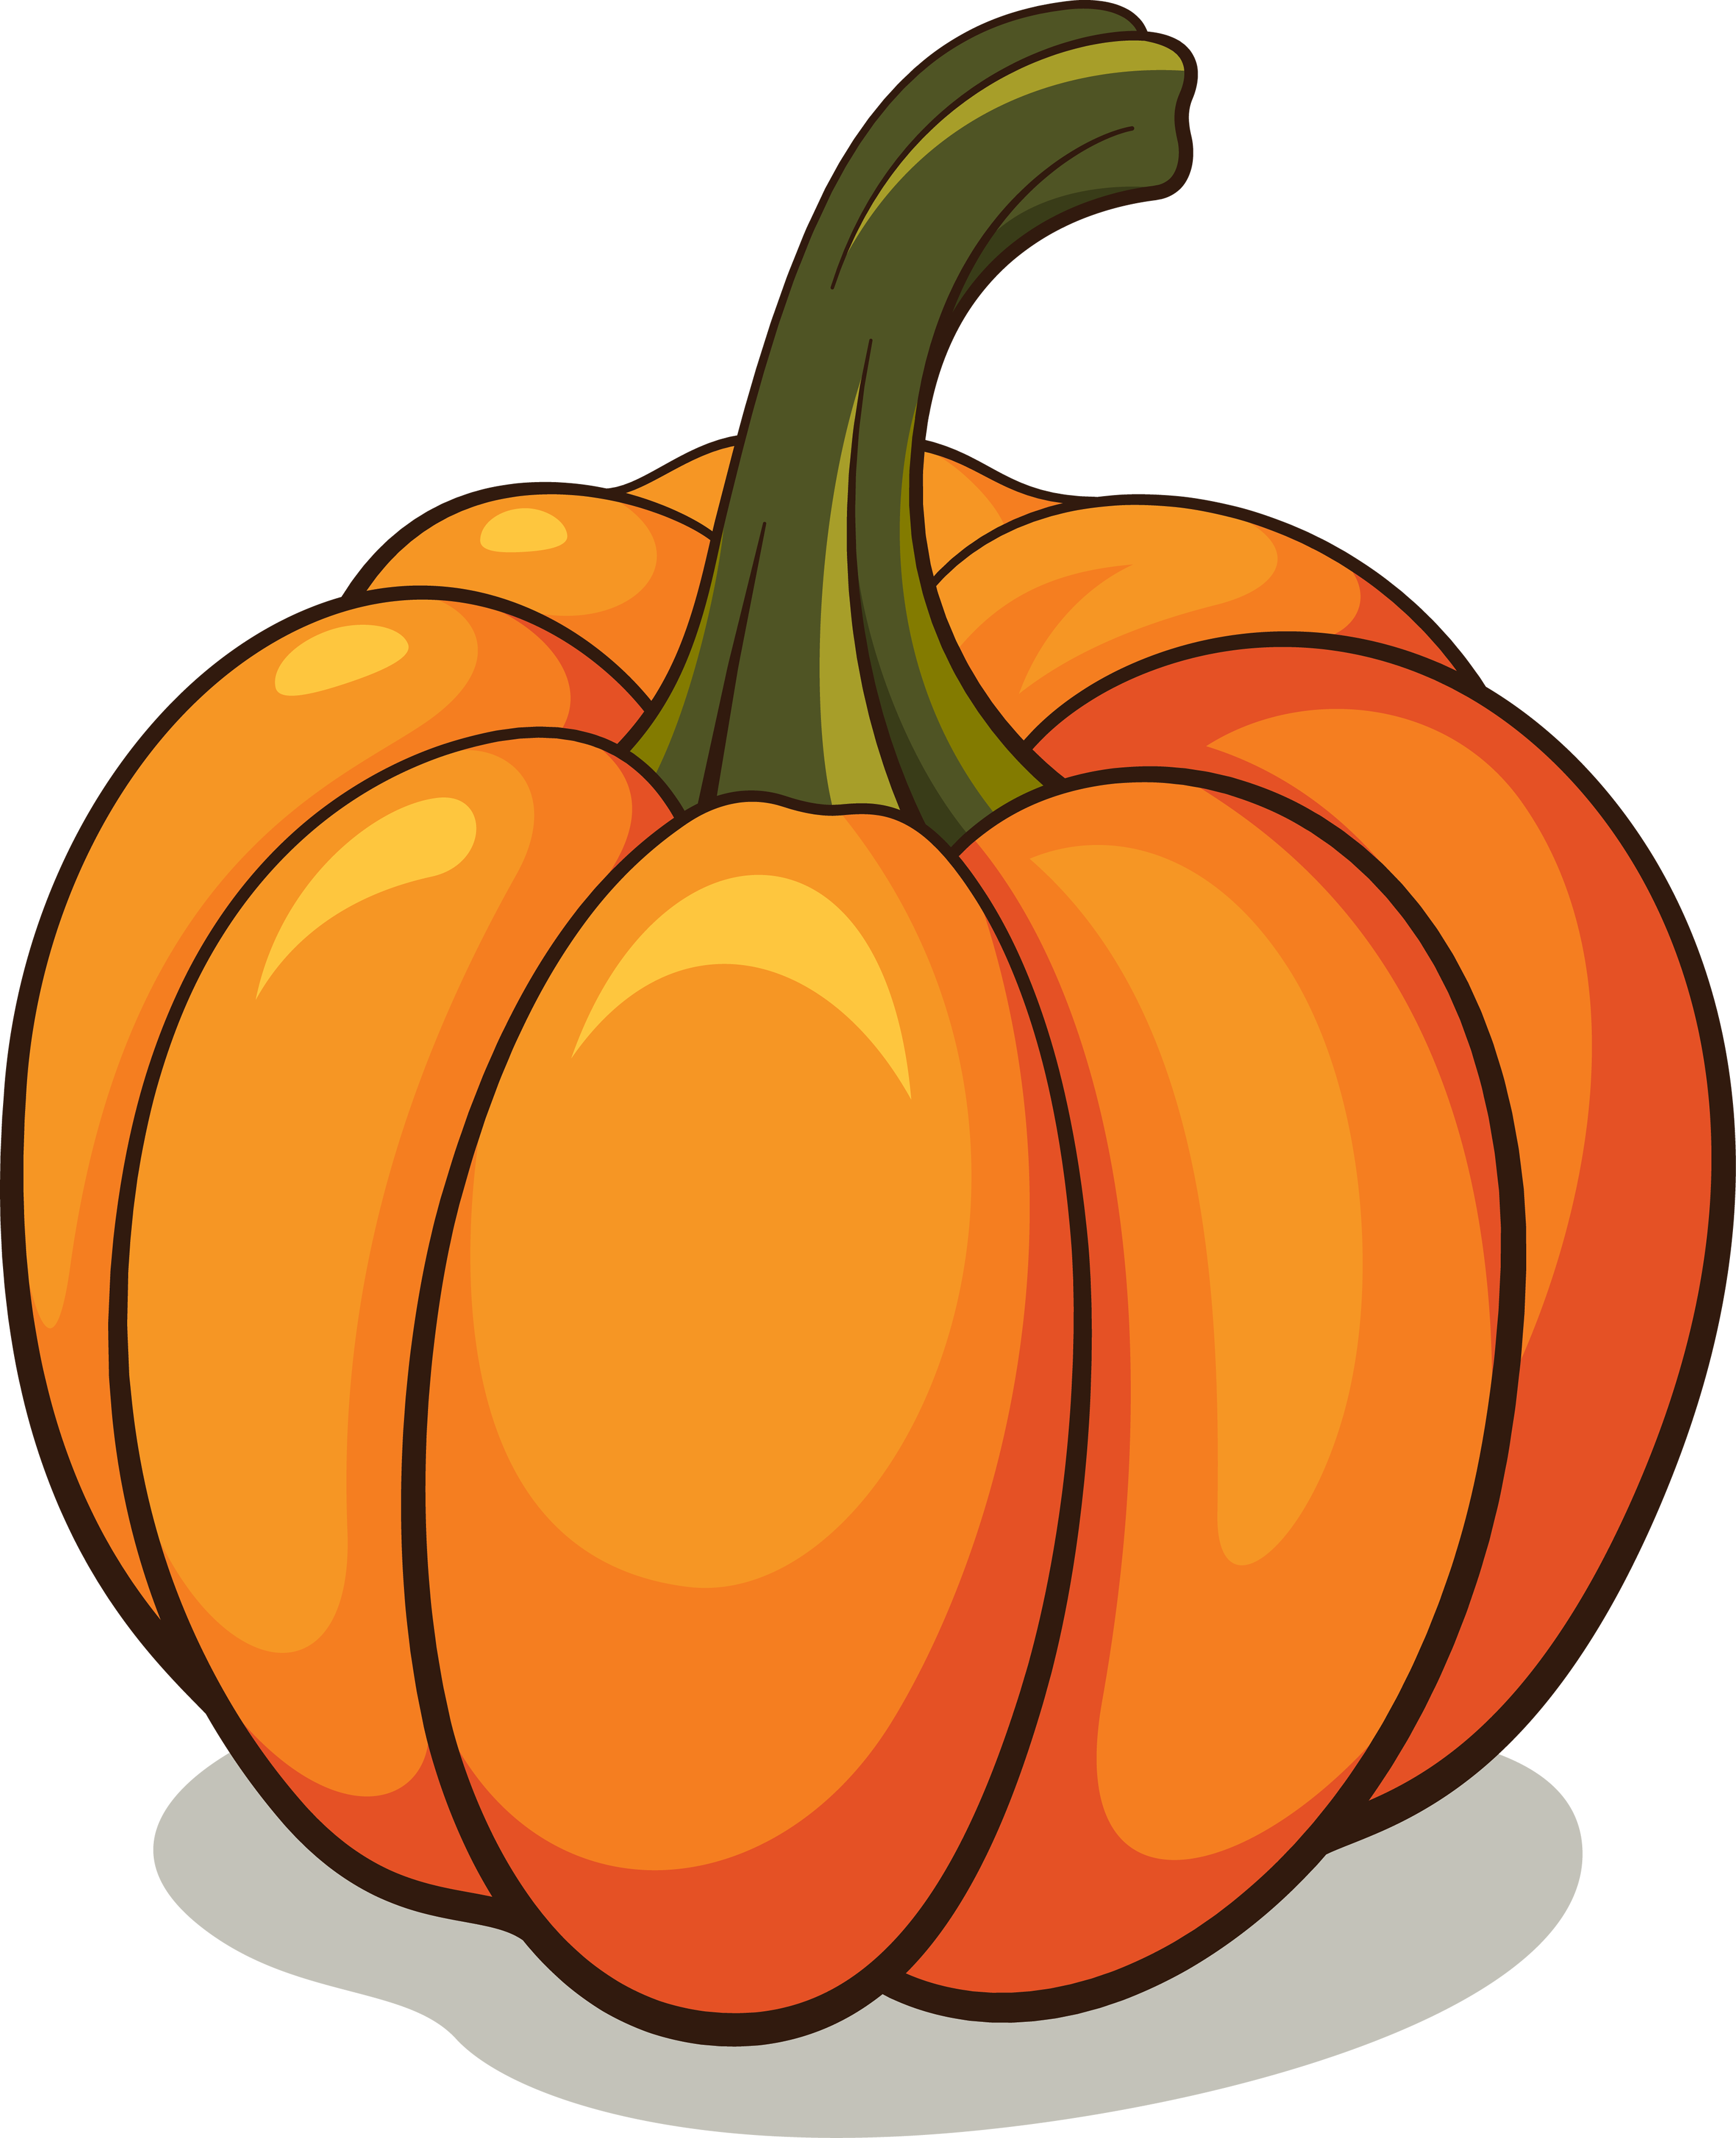 Color pumpkin clipart svg freeuse library Pumpkin Clipart Png | cyberuse svg freeuse library